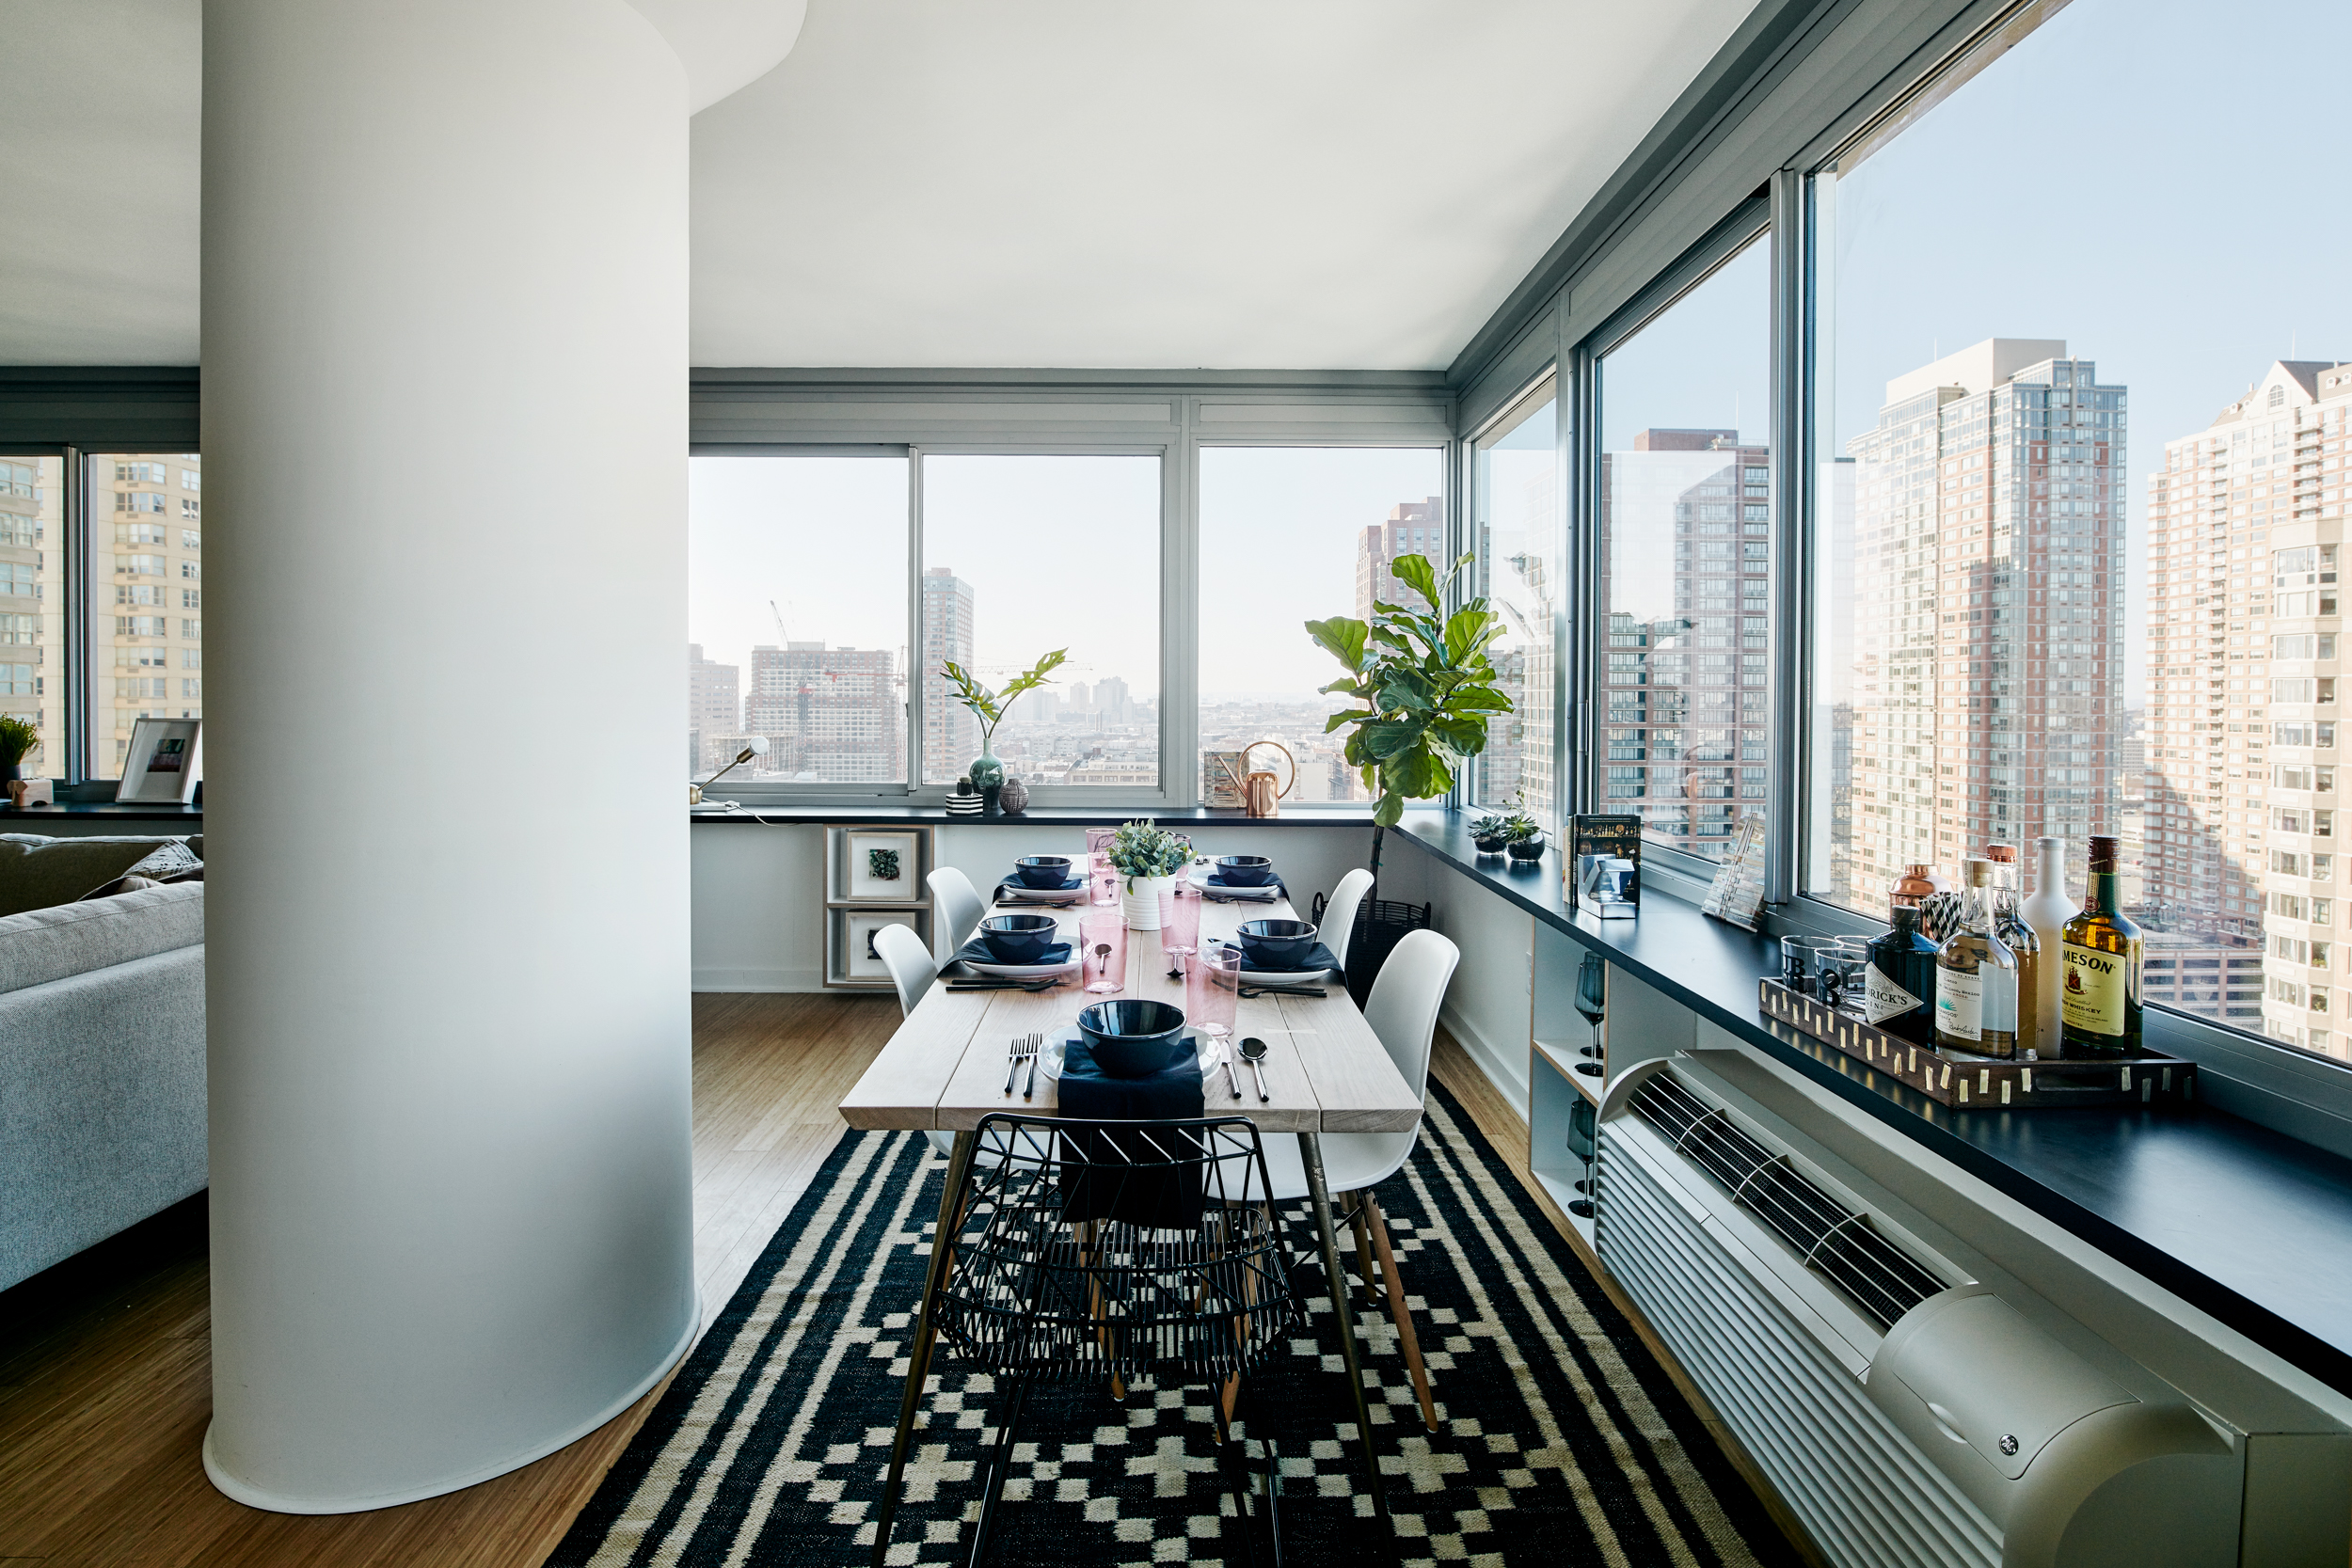 Rentals at Urbys Jersey City skyscraper hit the market from